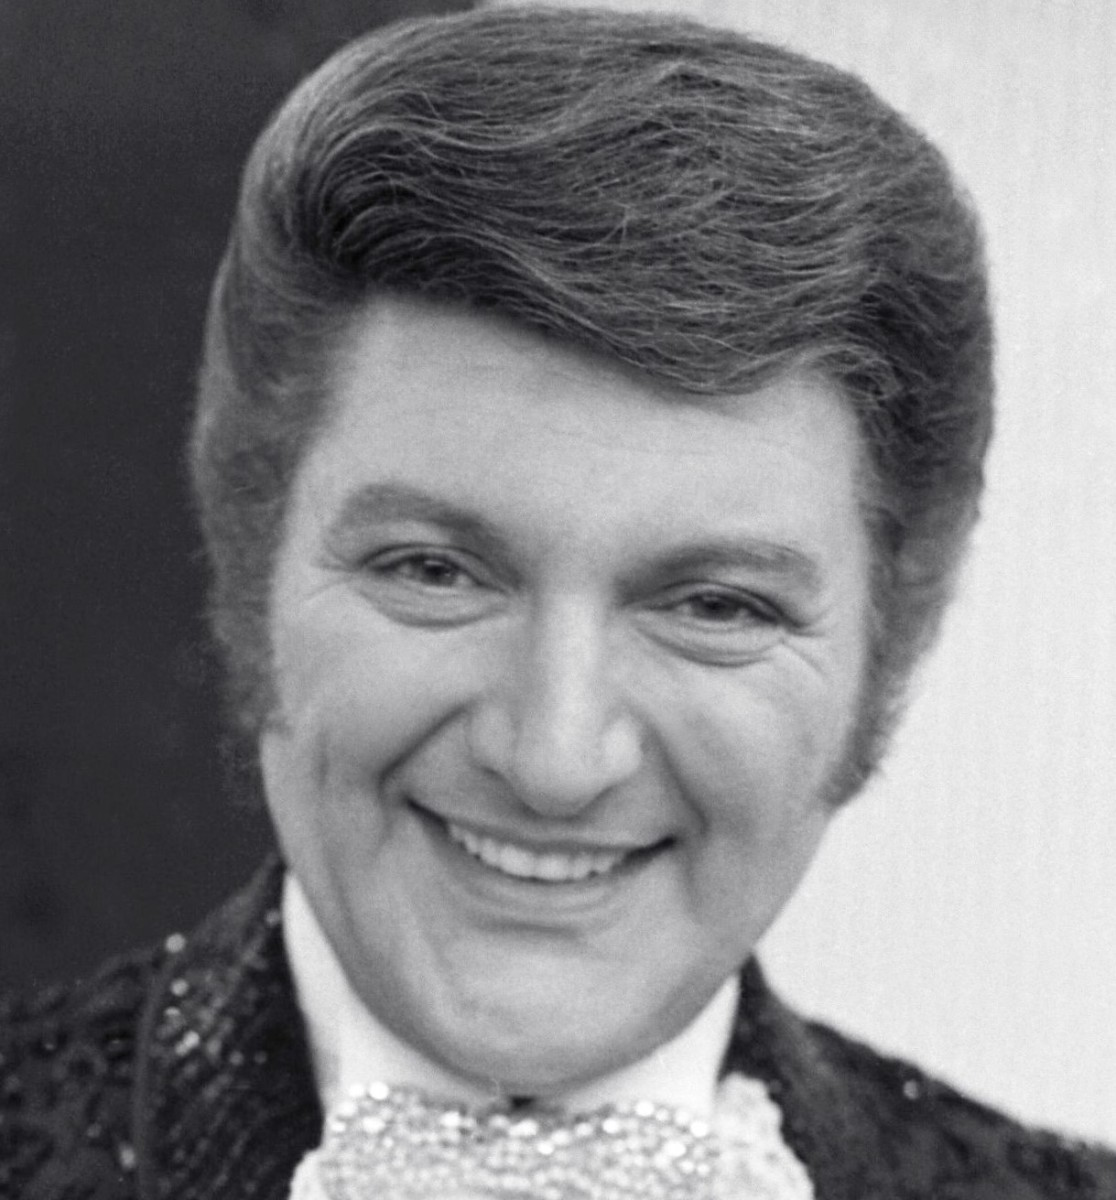 Liberace: born May 16 1919 died February 4 1987 was a celebrity showman pianist